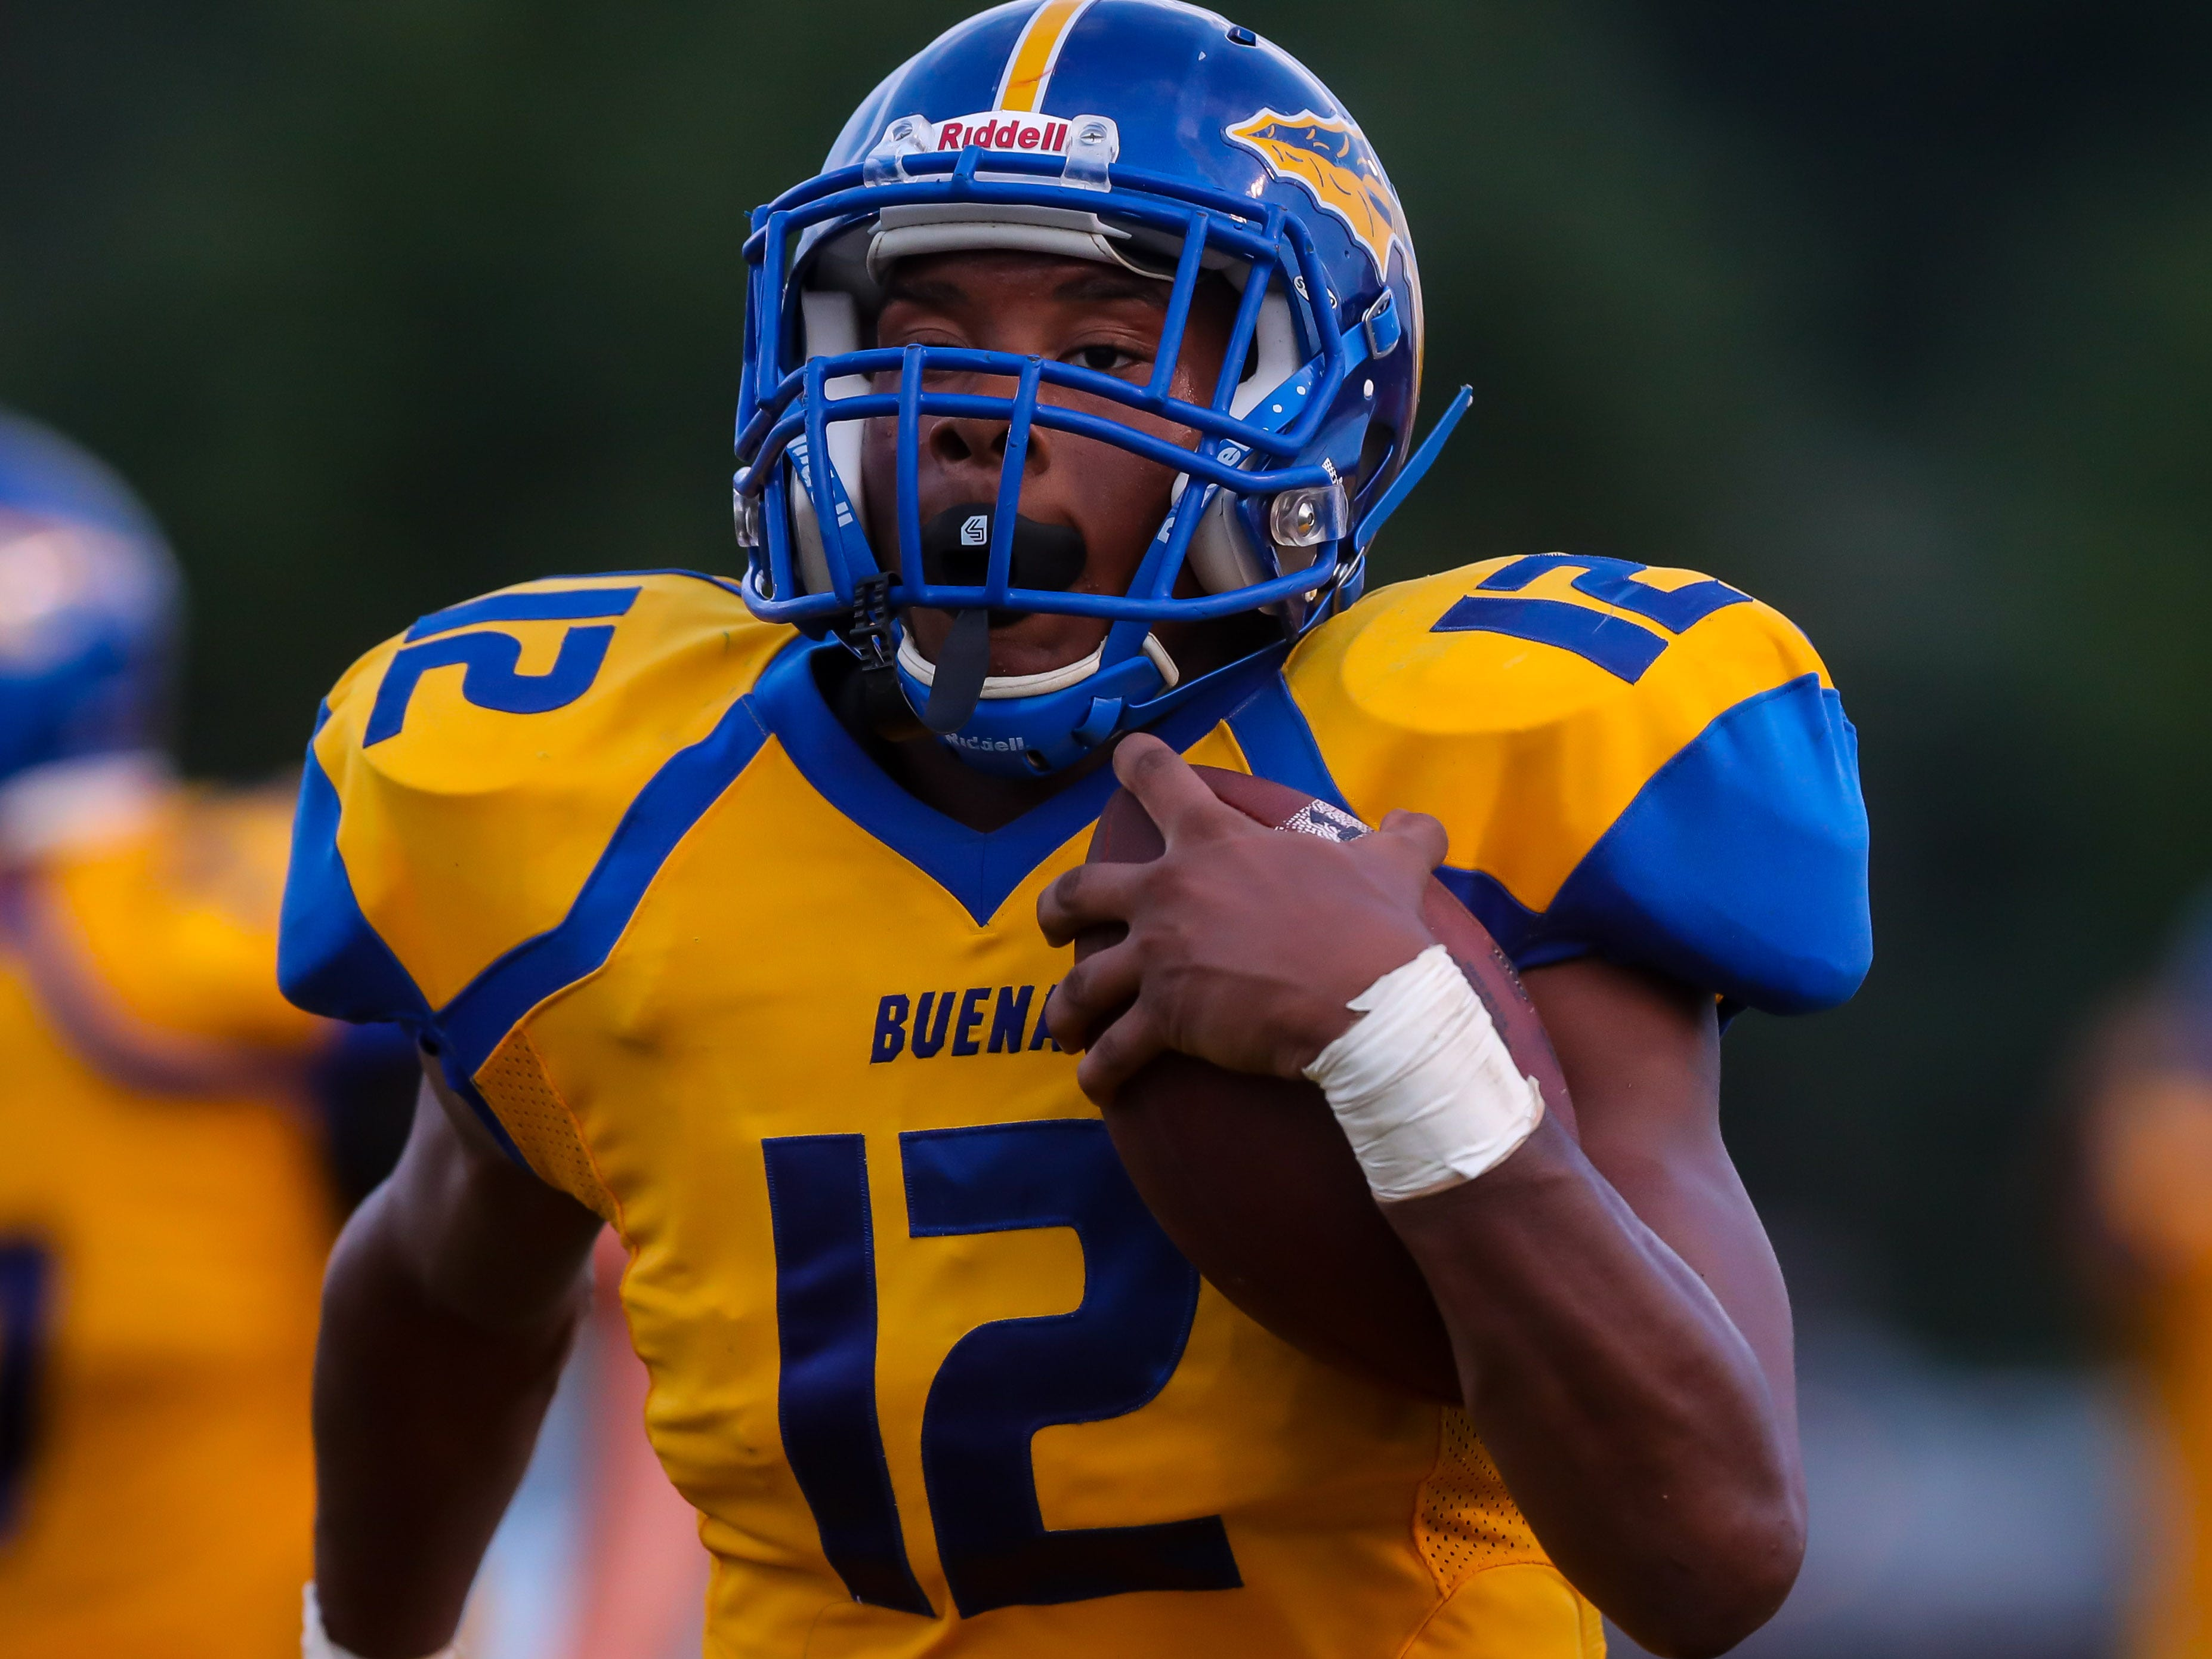 Shayron Smithbey of Buena runs for a 46 yard touchdown against Haddon Township, September 7, 2018.